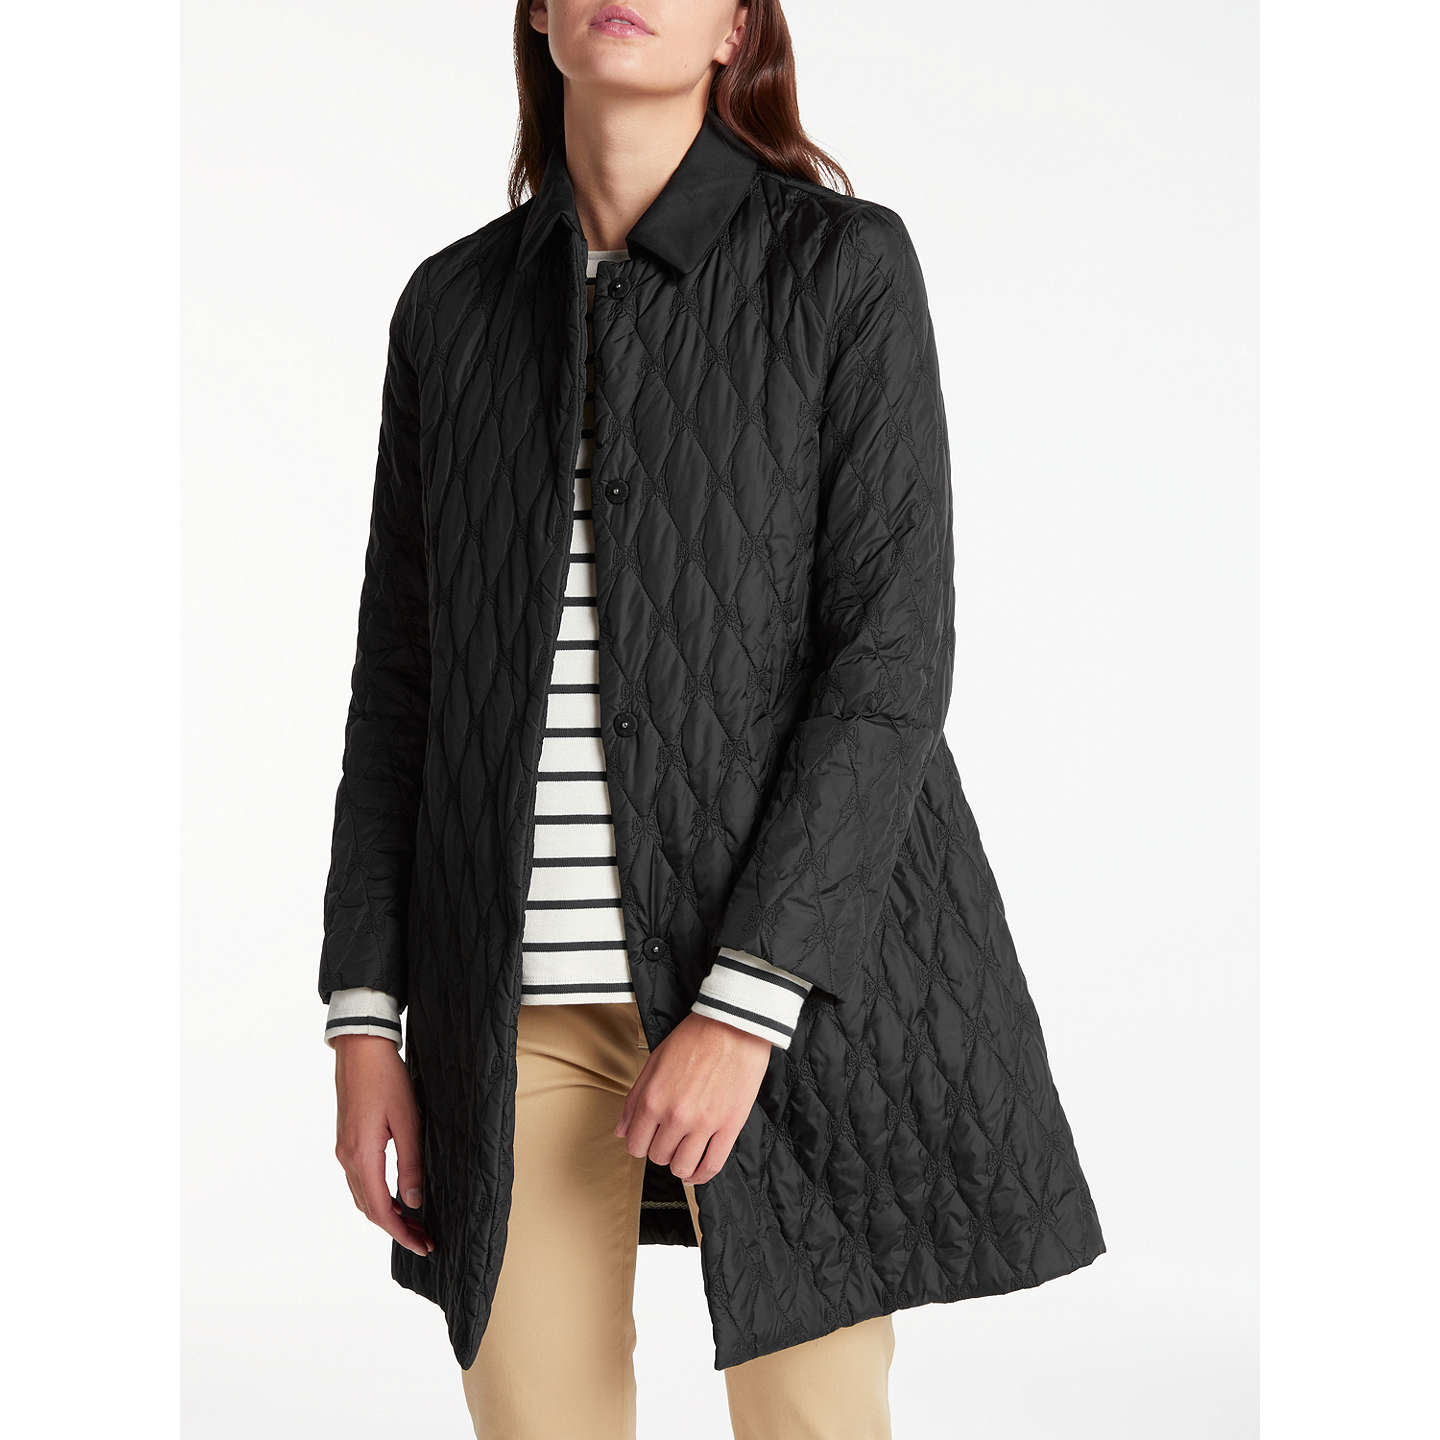 Outlet Locations Cheap Price S MaxMara Quilted Knee-Length Coat 2018 New Cheap Online roEIR